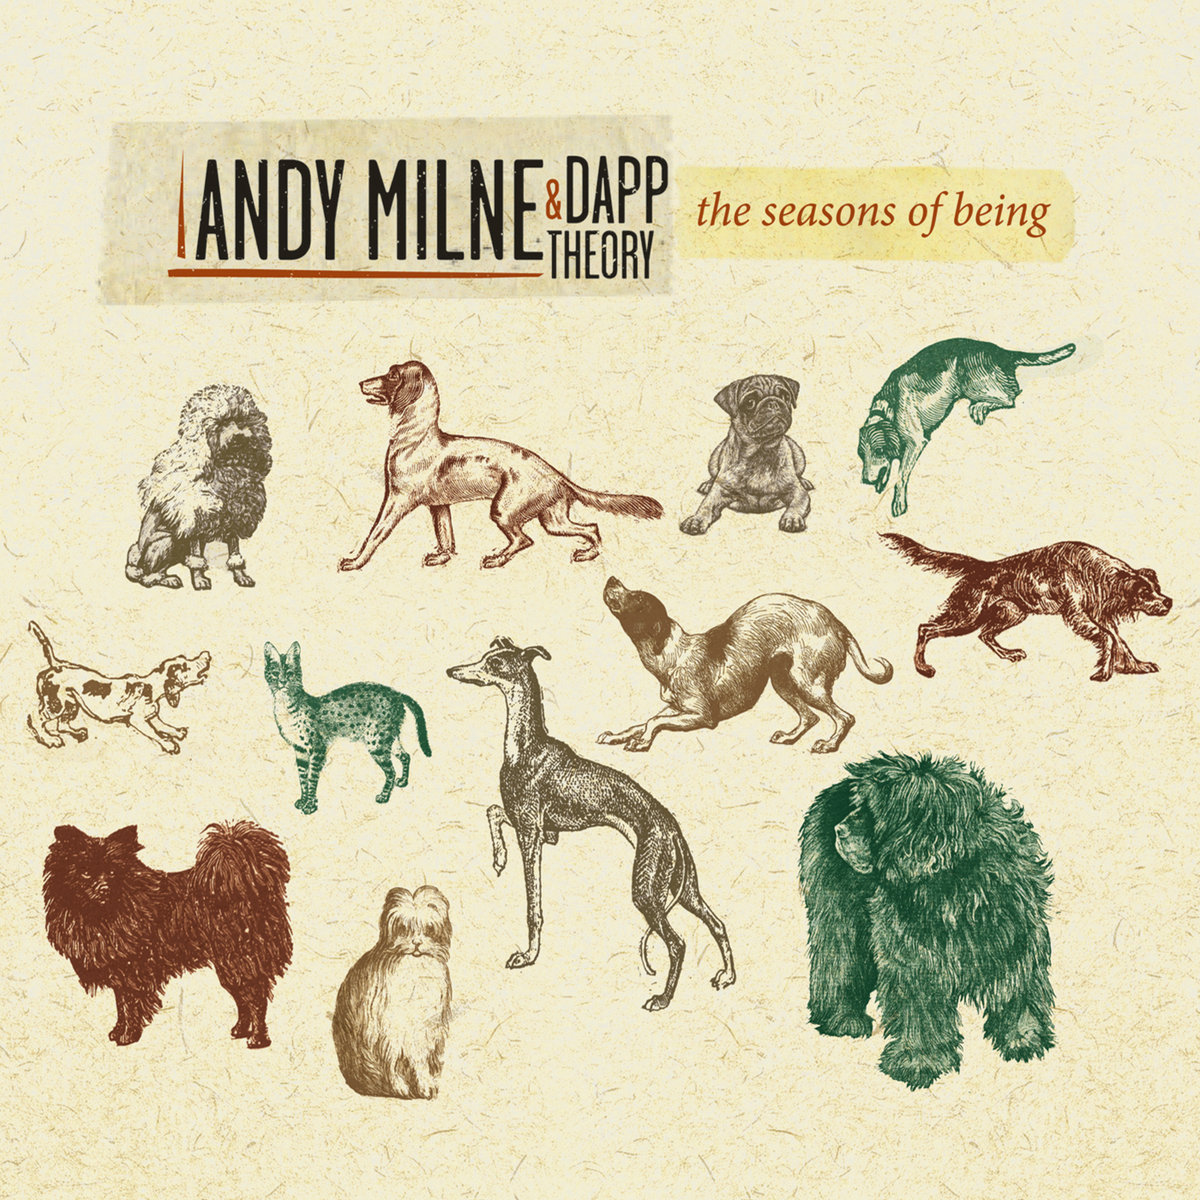 The Seasons of Being   Andy Milne & Dapp Theory